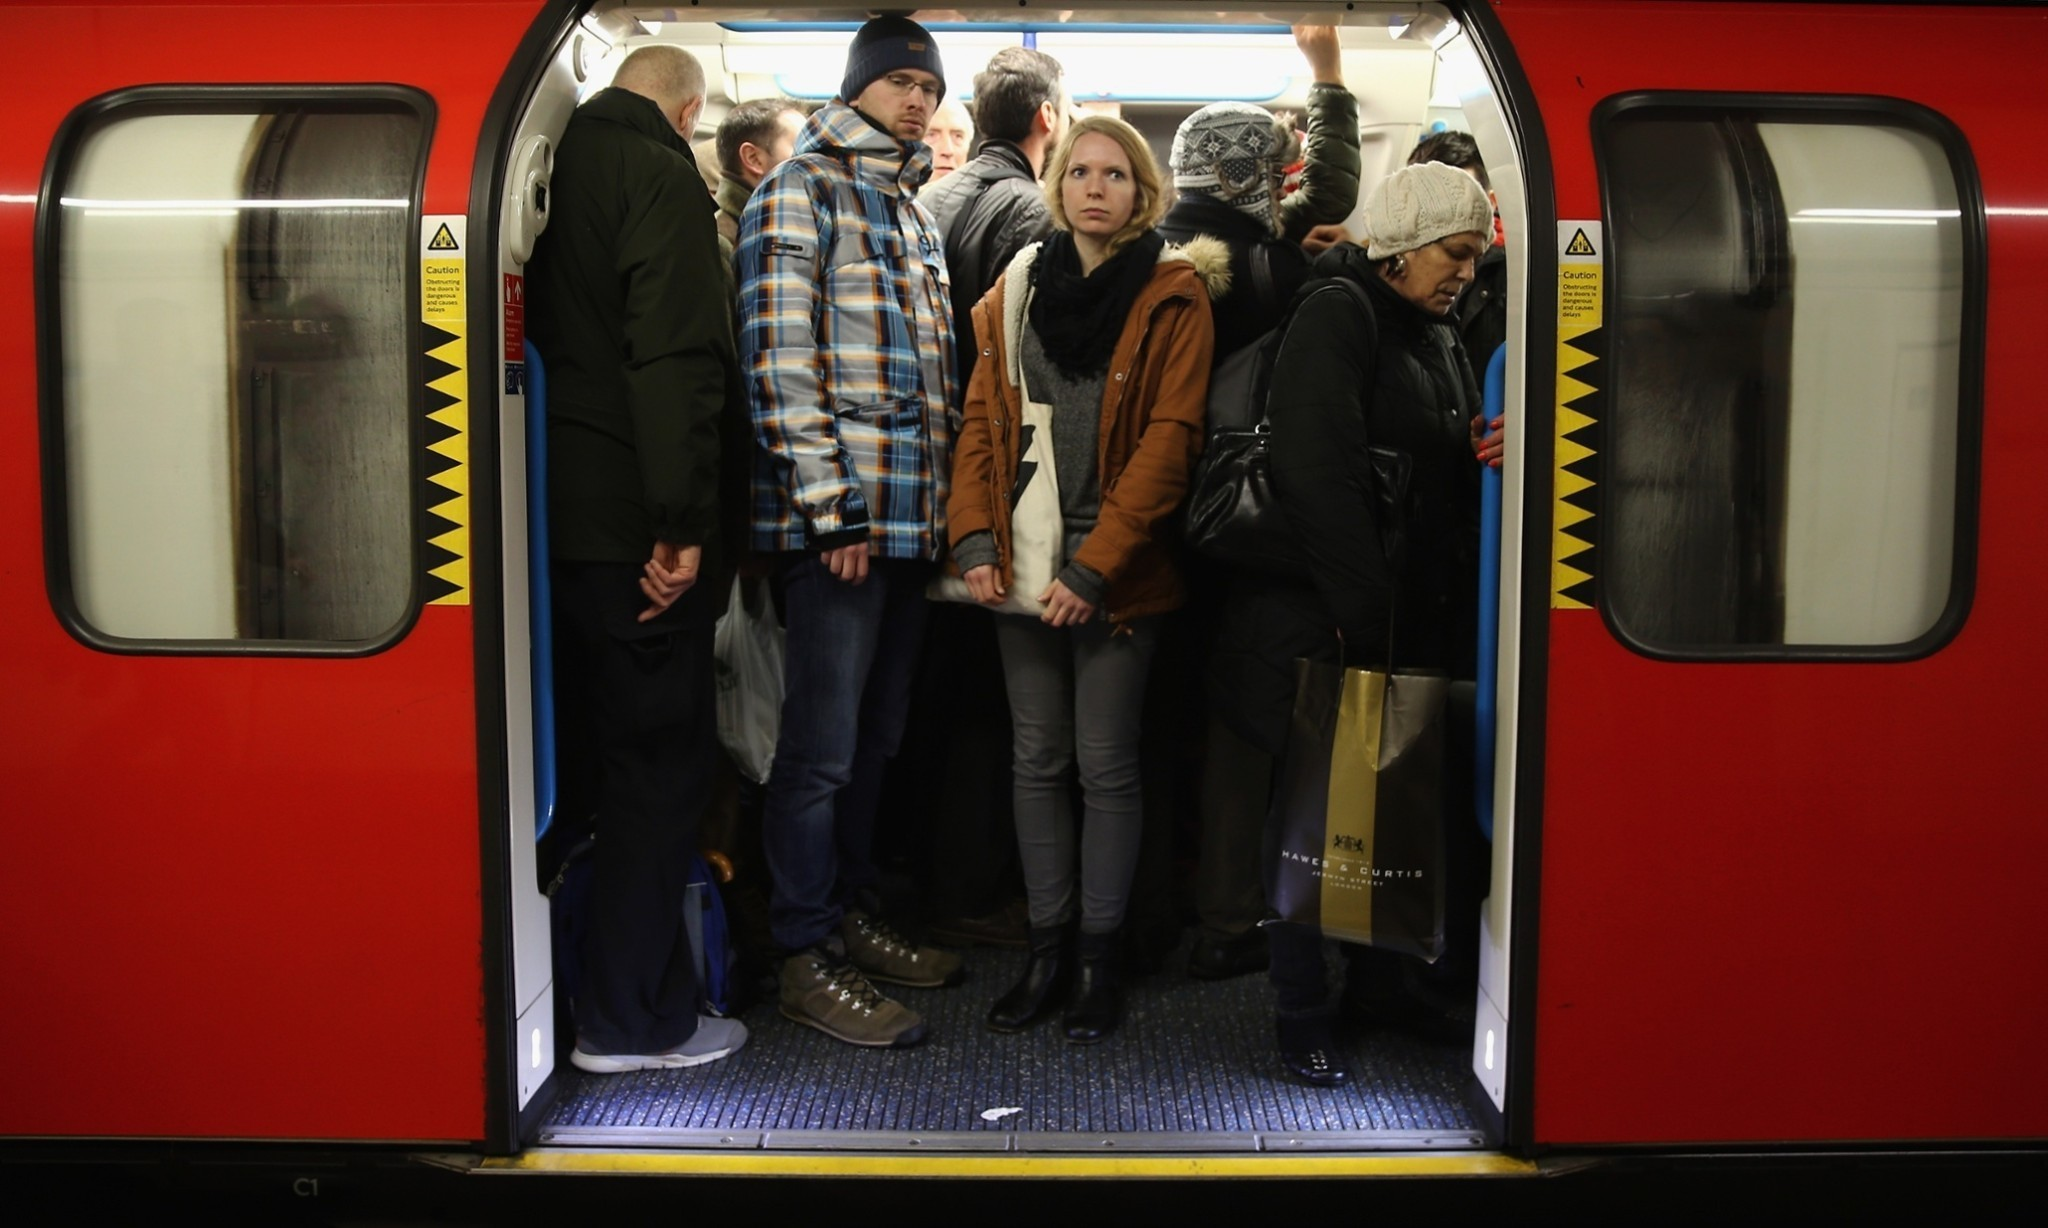 How does commuting affect wellbeing?